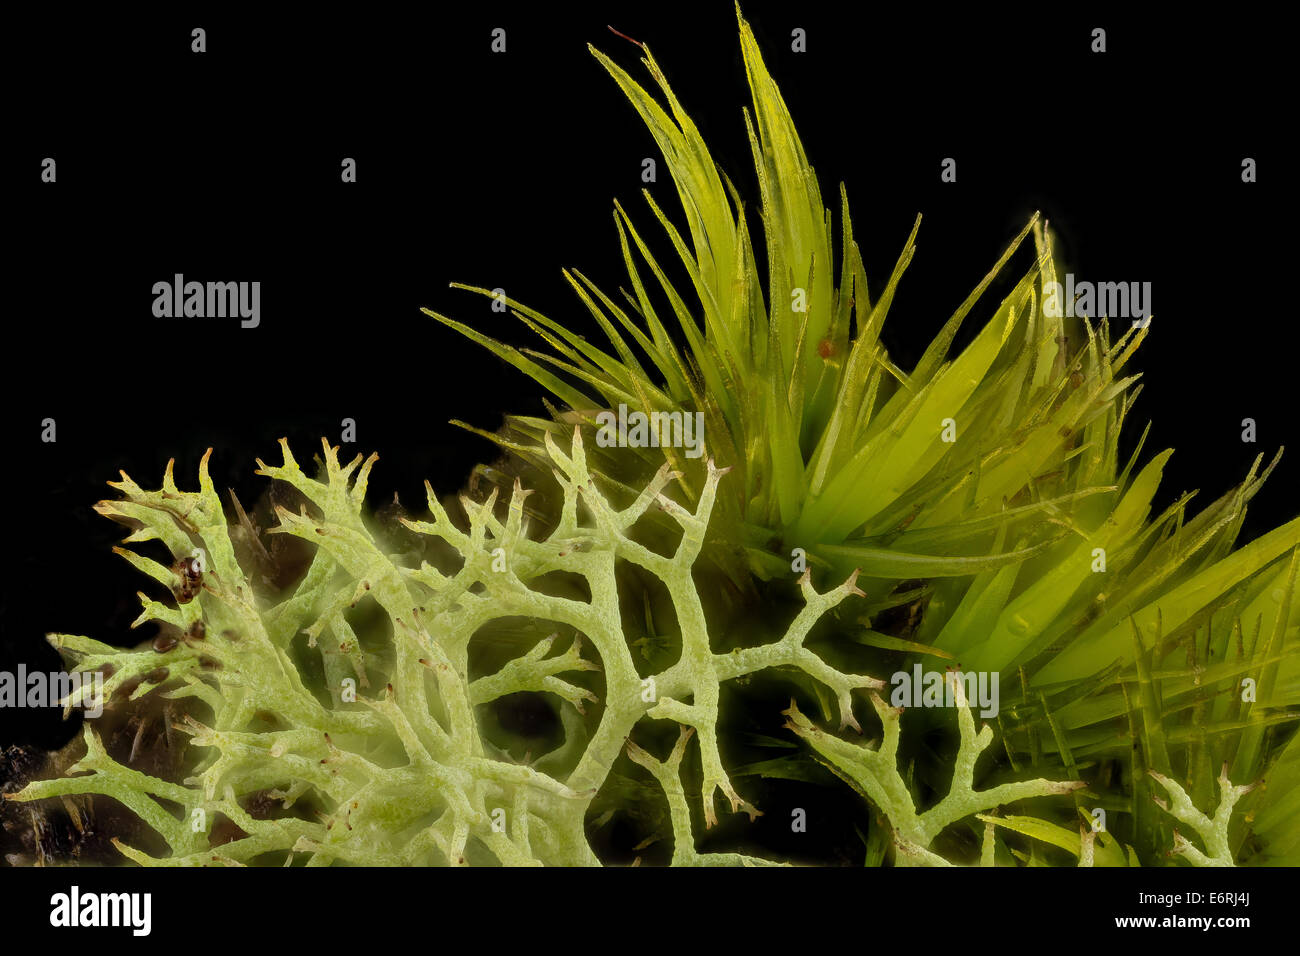 lichen and moss, beltsville, md_2014-04-15-182424 ZS PMax_13896193714_o A micro arrangement of moss and Cladonia - Stock Image